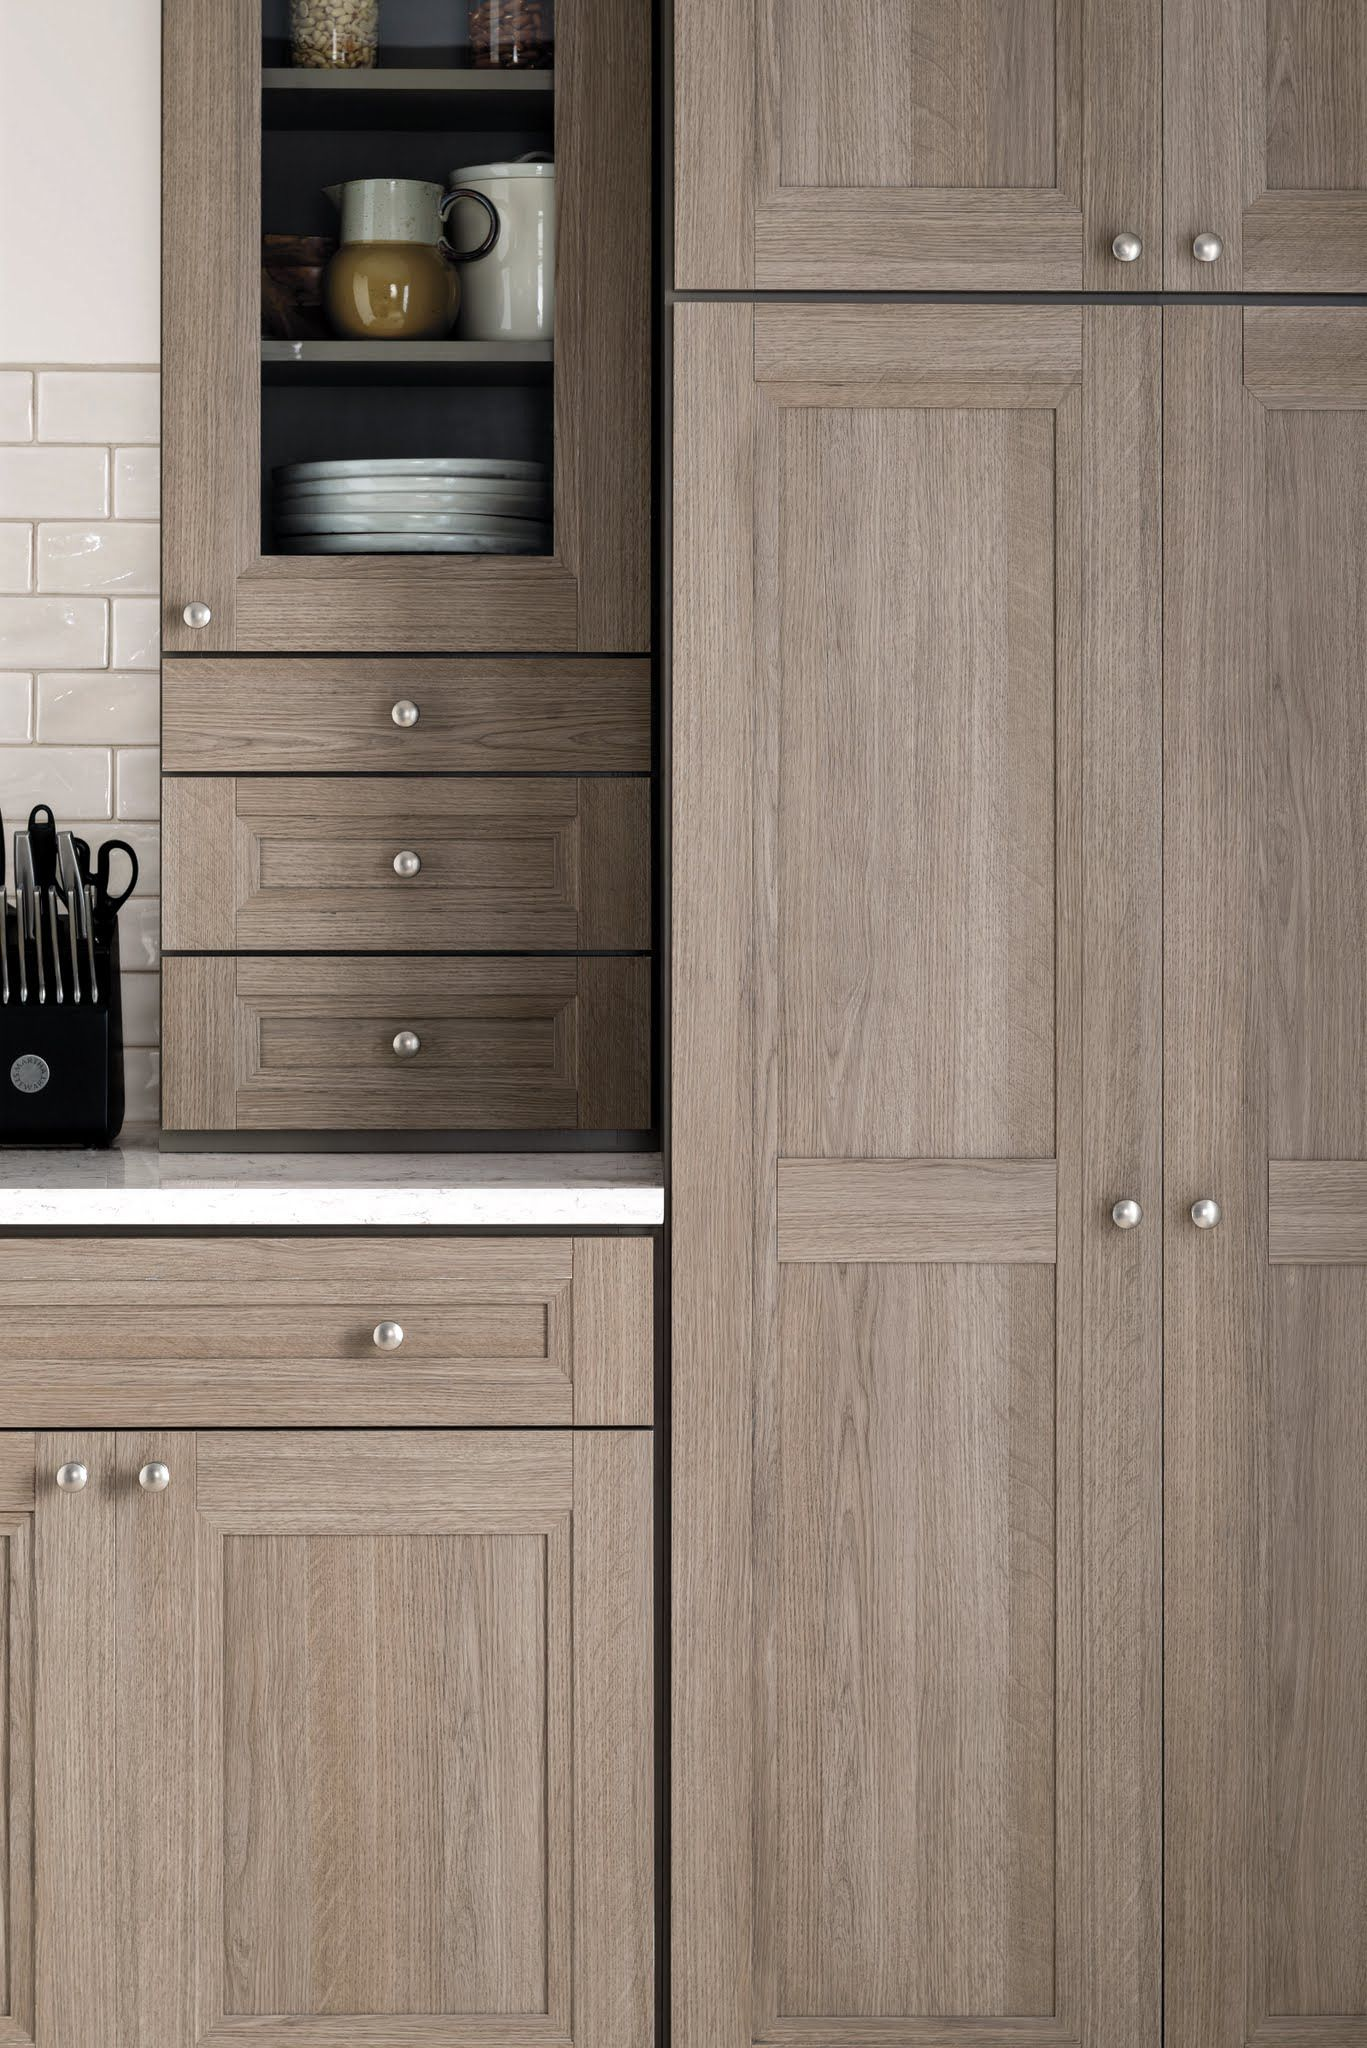 Cabinet Doors Home Depot 2020 In 2020 Kitchen Cabinet Design Rustic Cabinets Rustic Dining Room